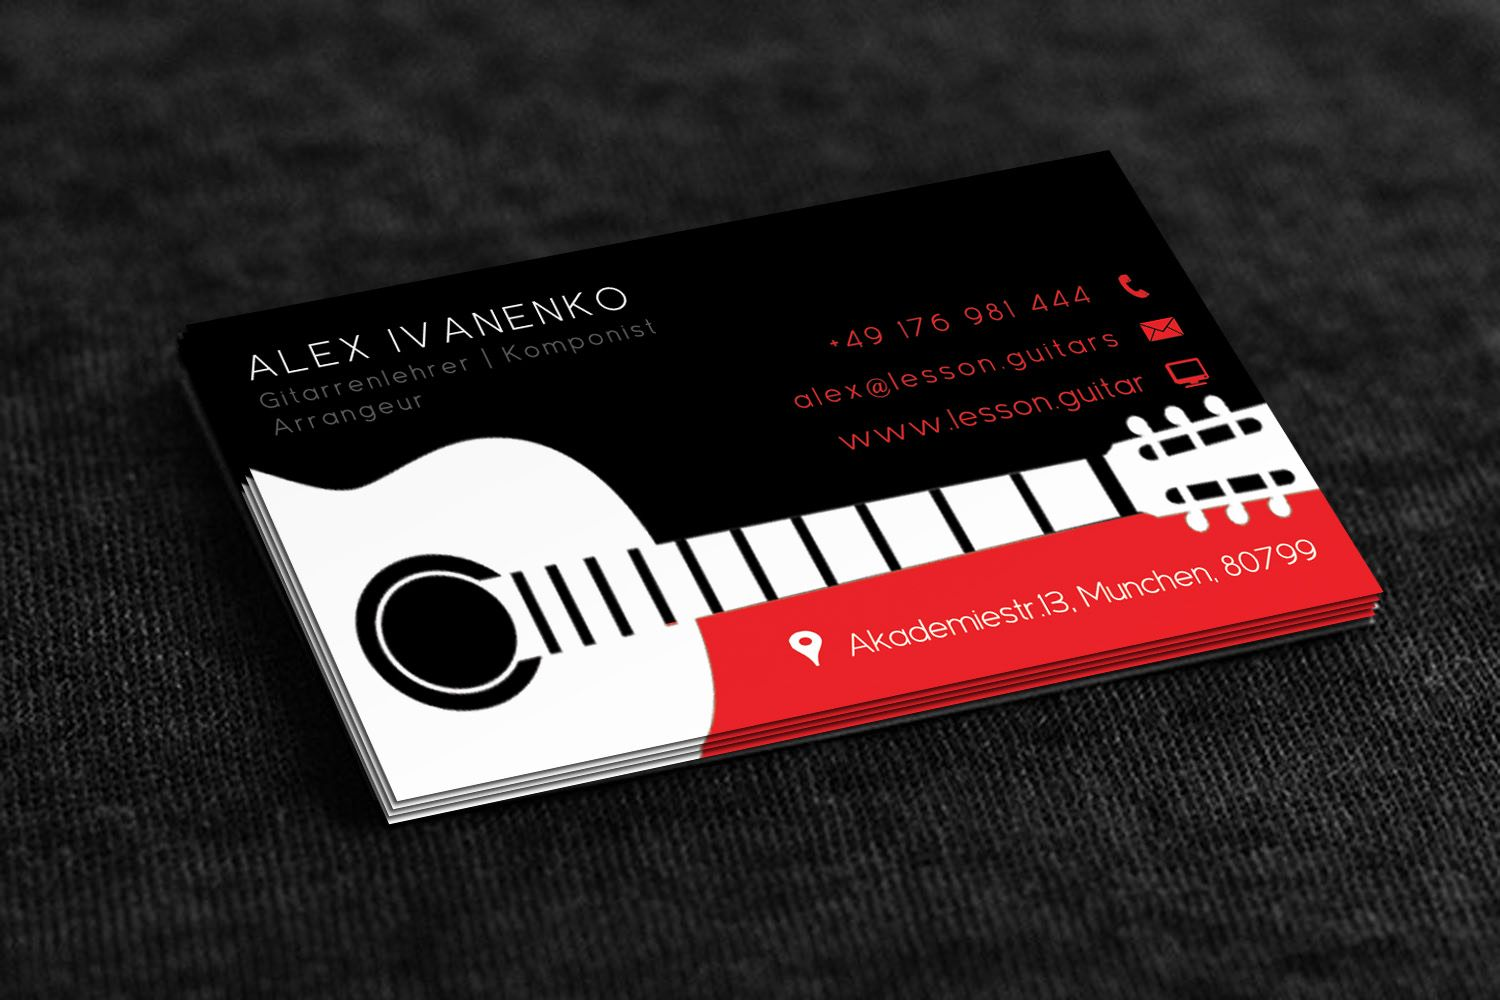 Business Card Design By Stream Graphics For Guitar Teacher And Composer Needs A Business Card Name Card Design Music Business Cards Design Business Card Design